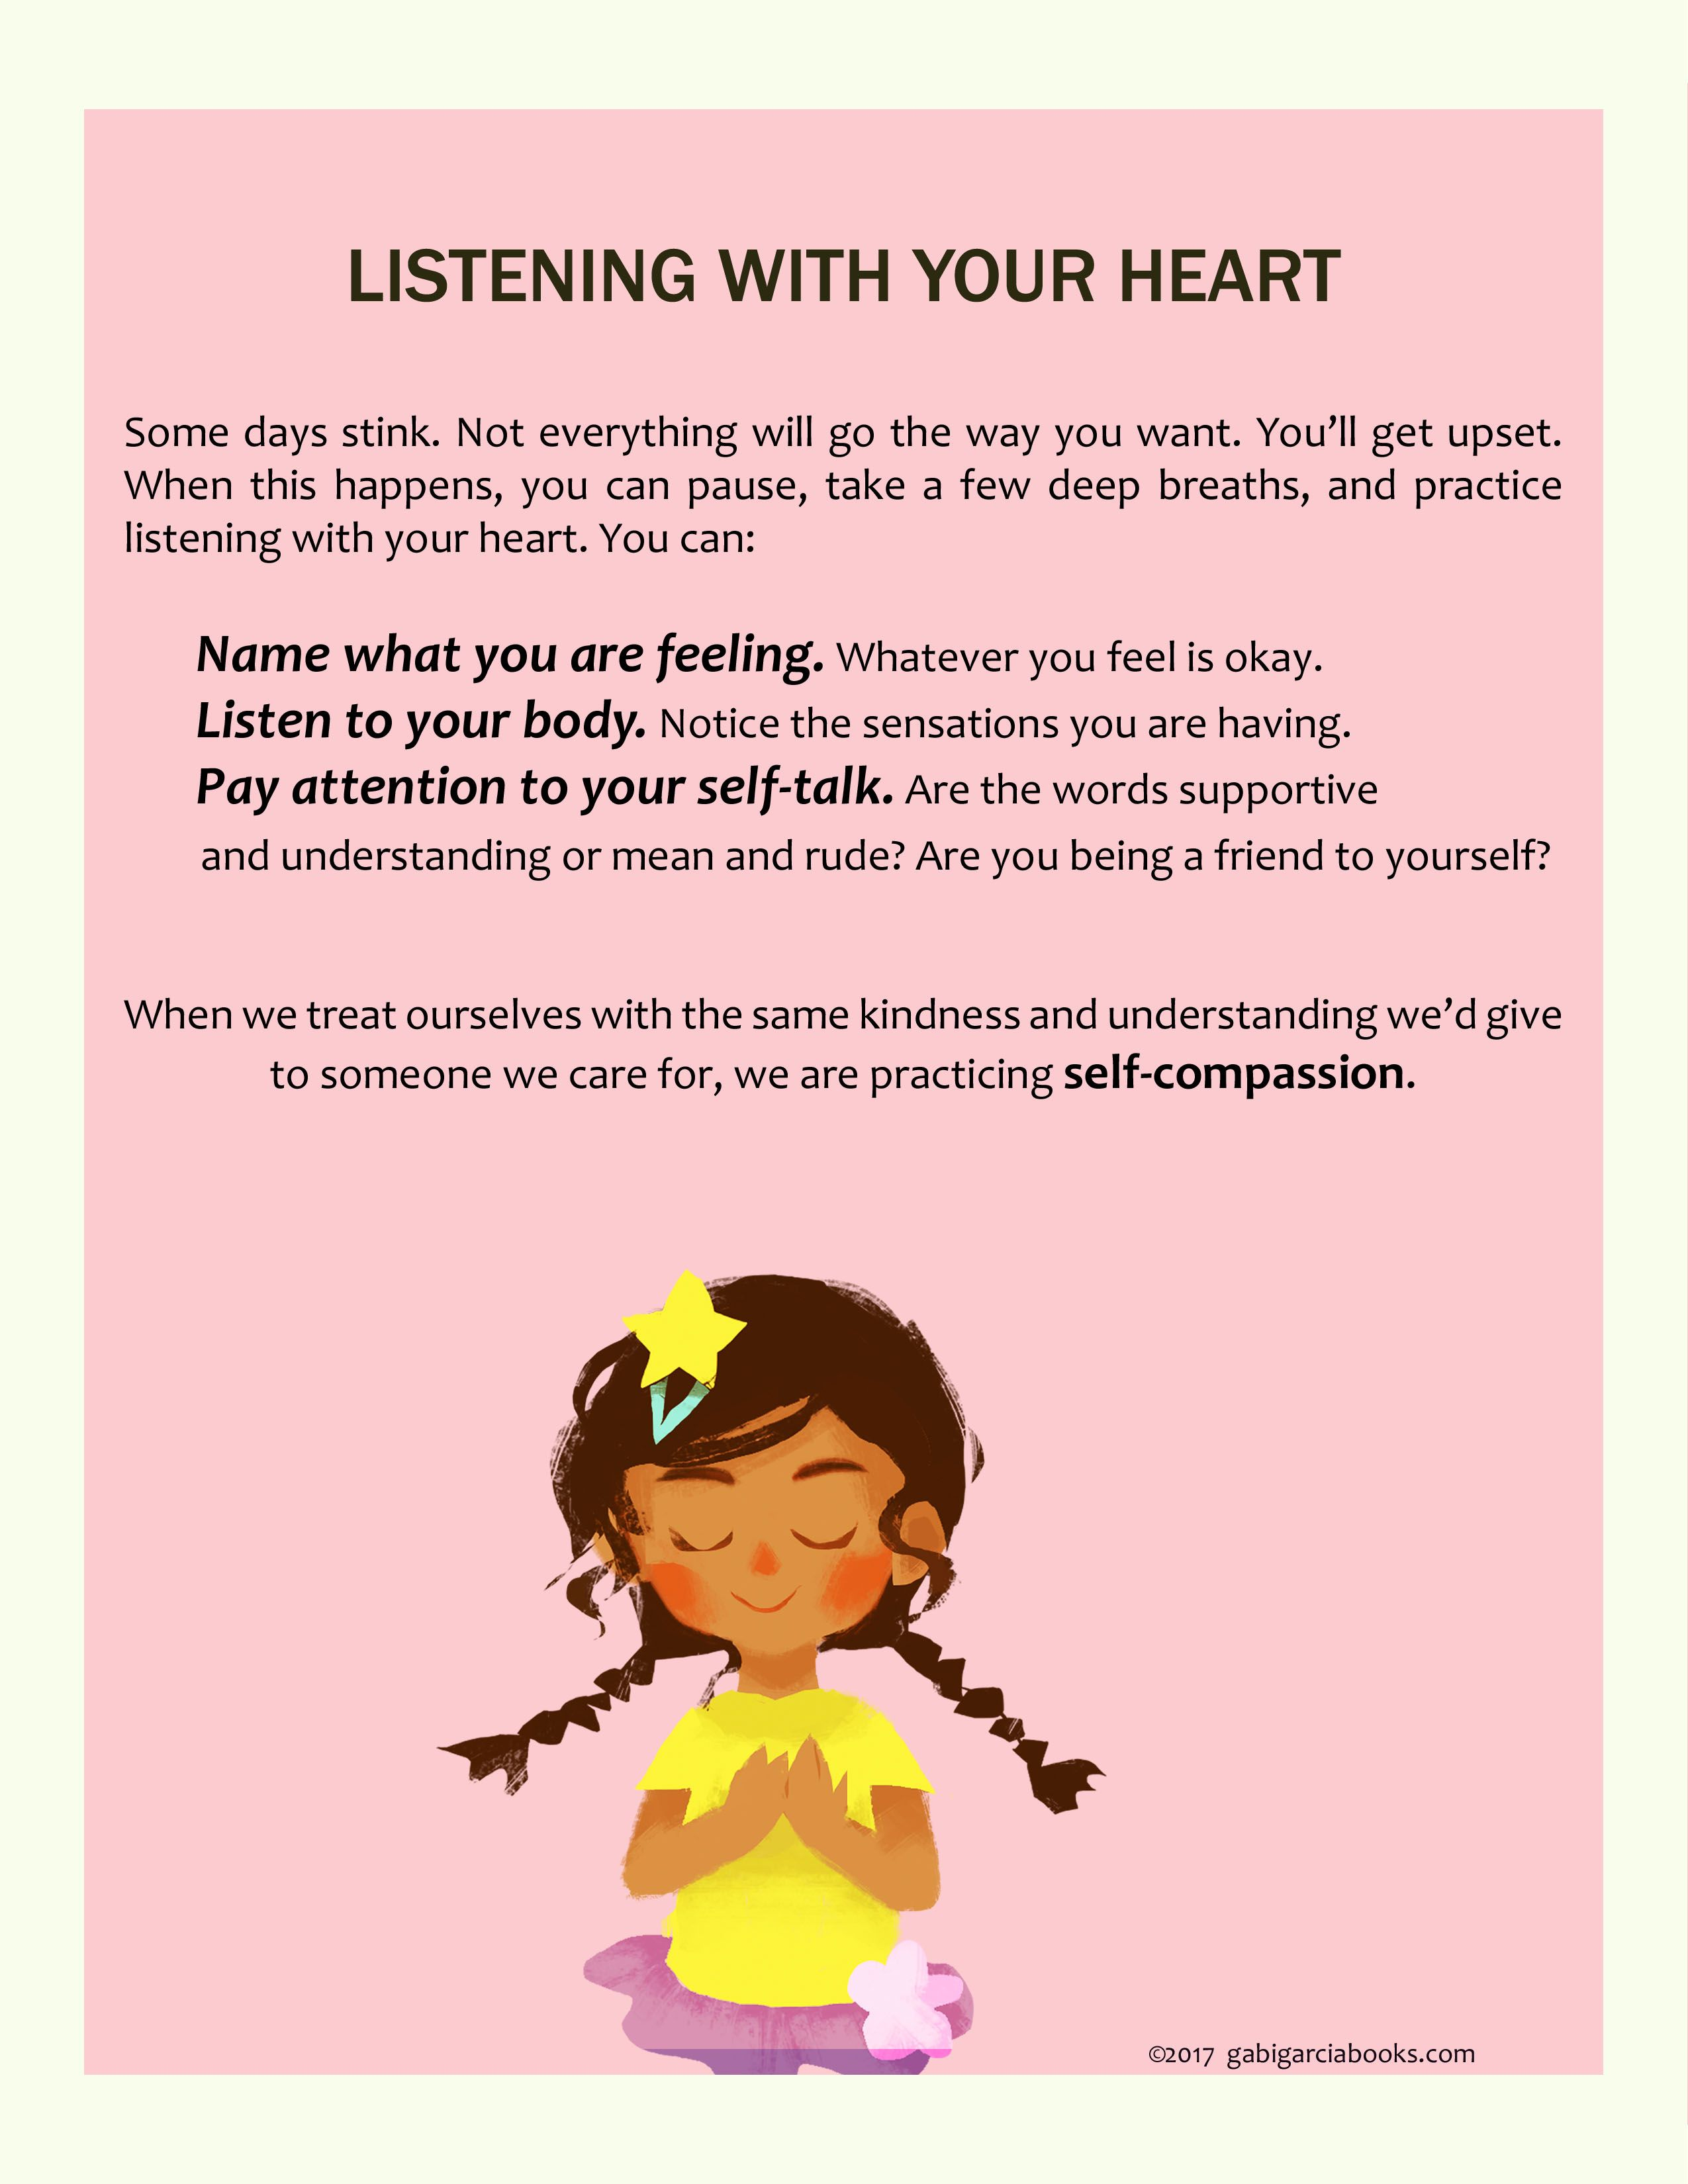 Free Talk On Mindfulness Practice For >> Free Downloadable Mindfulness Self Compassion Poster Listening